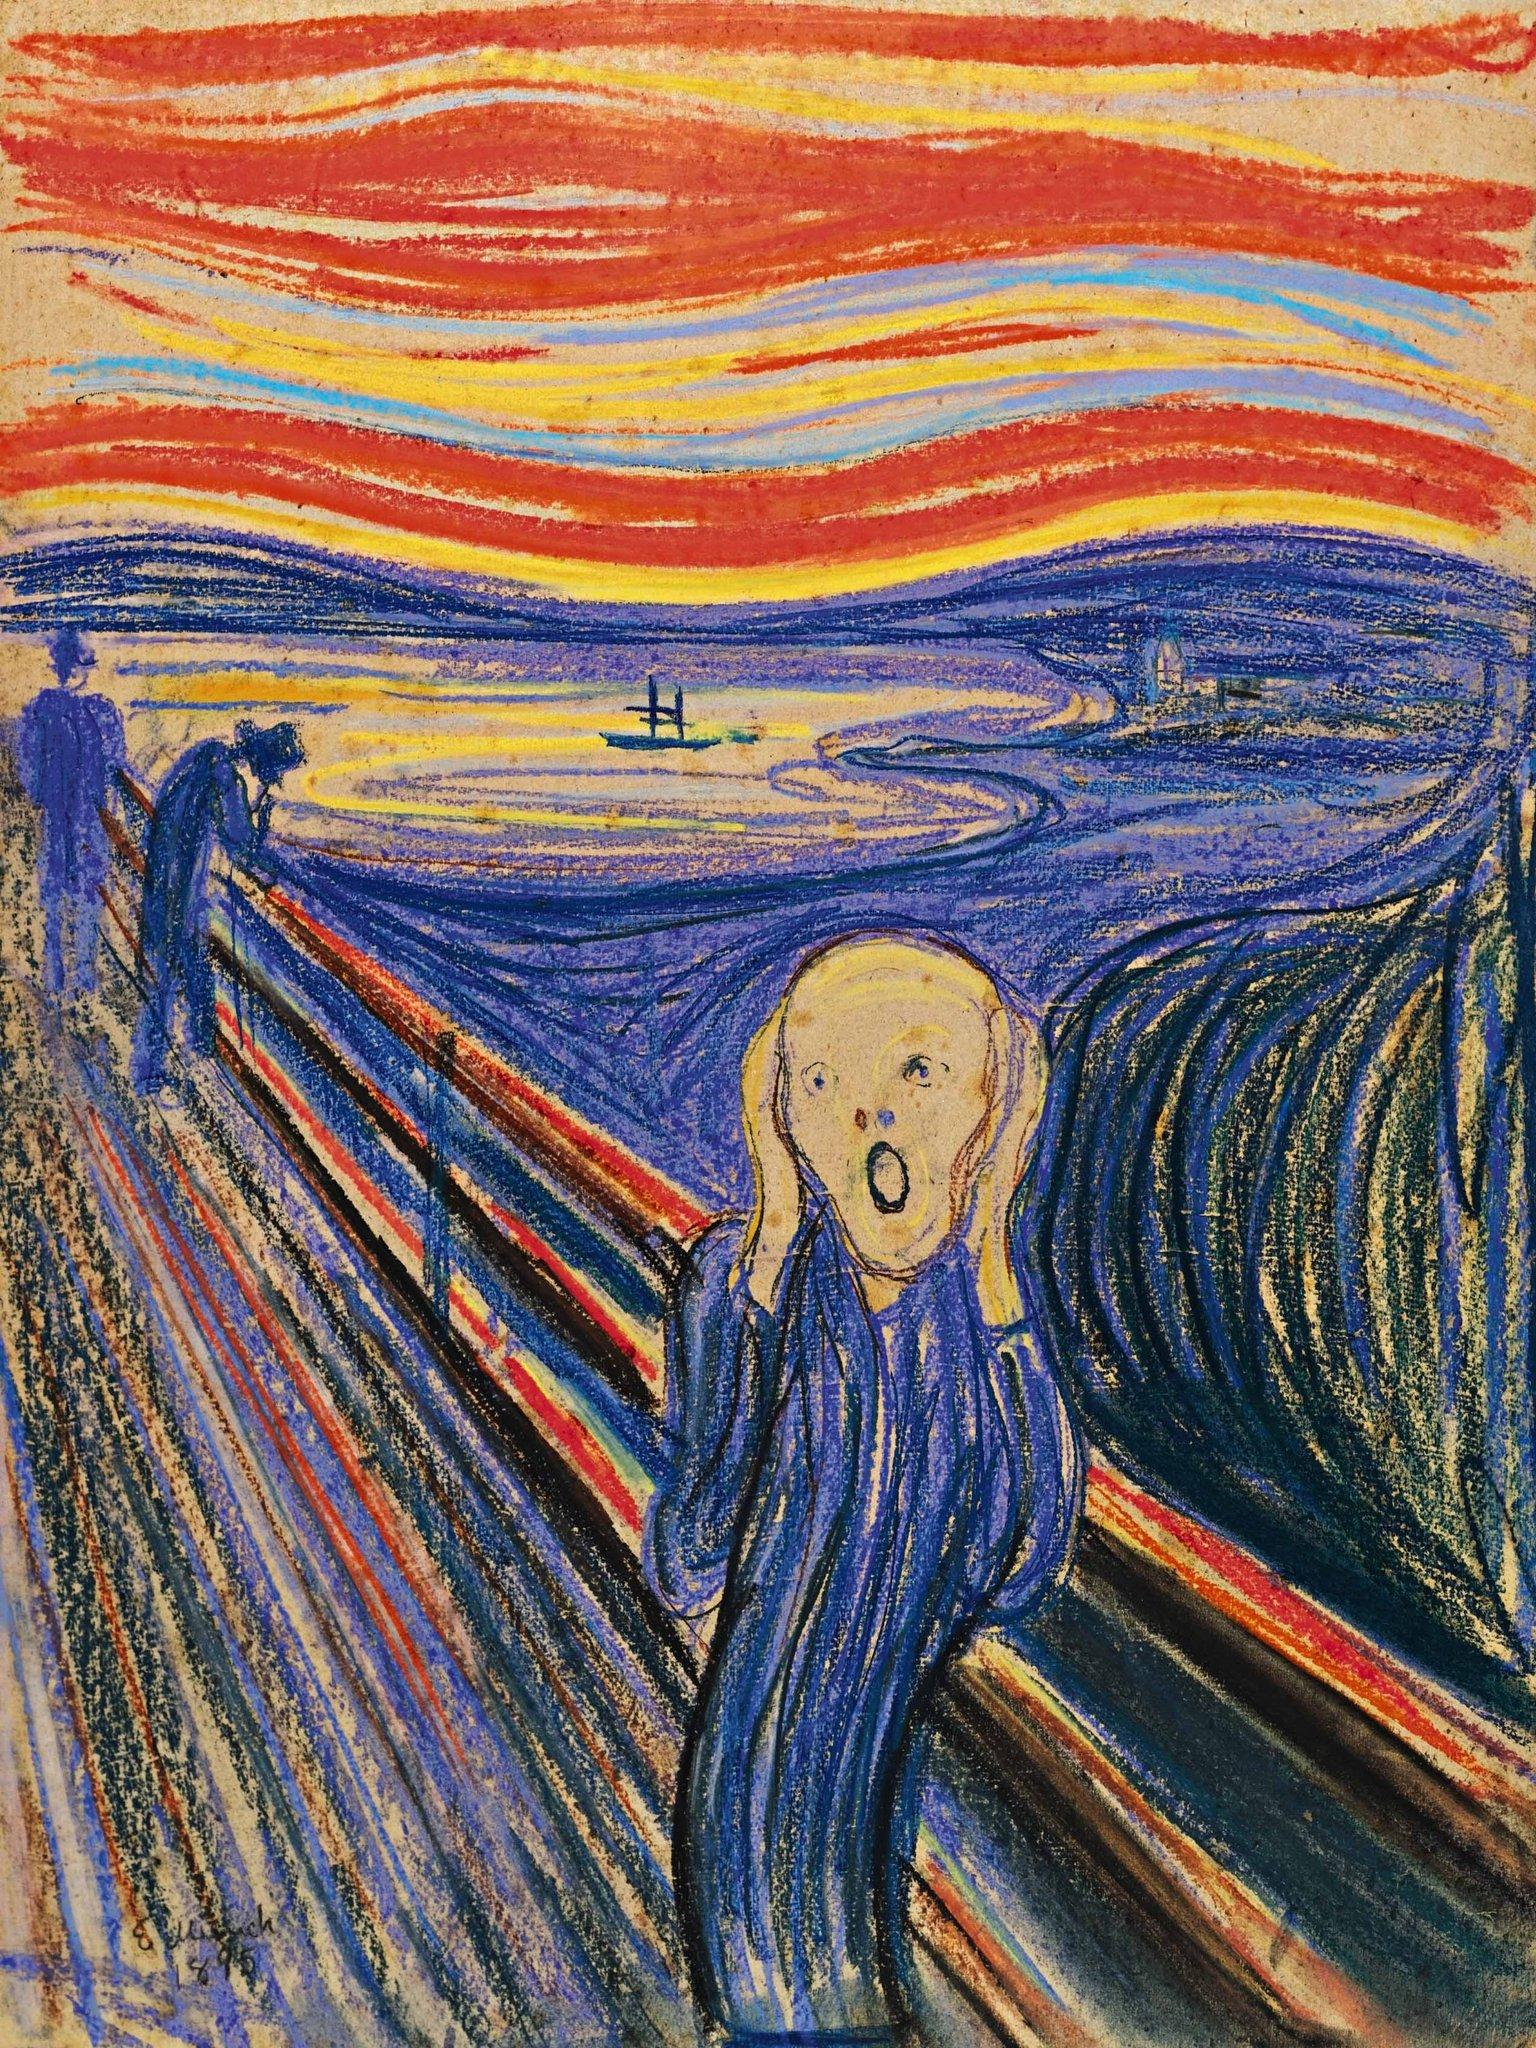 Moma Museum Munch's 'scream' To Hang For Six Months At Moma - The New